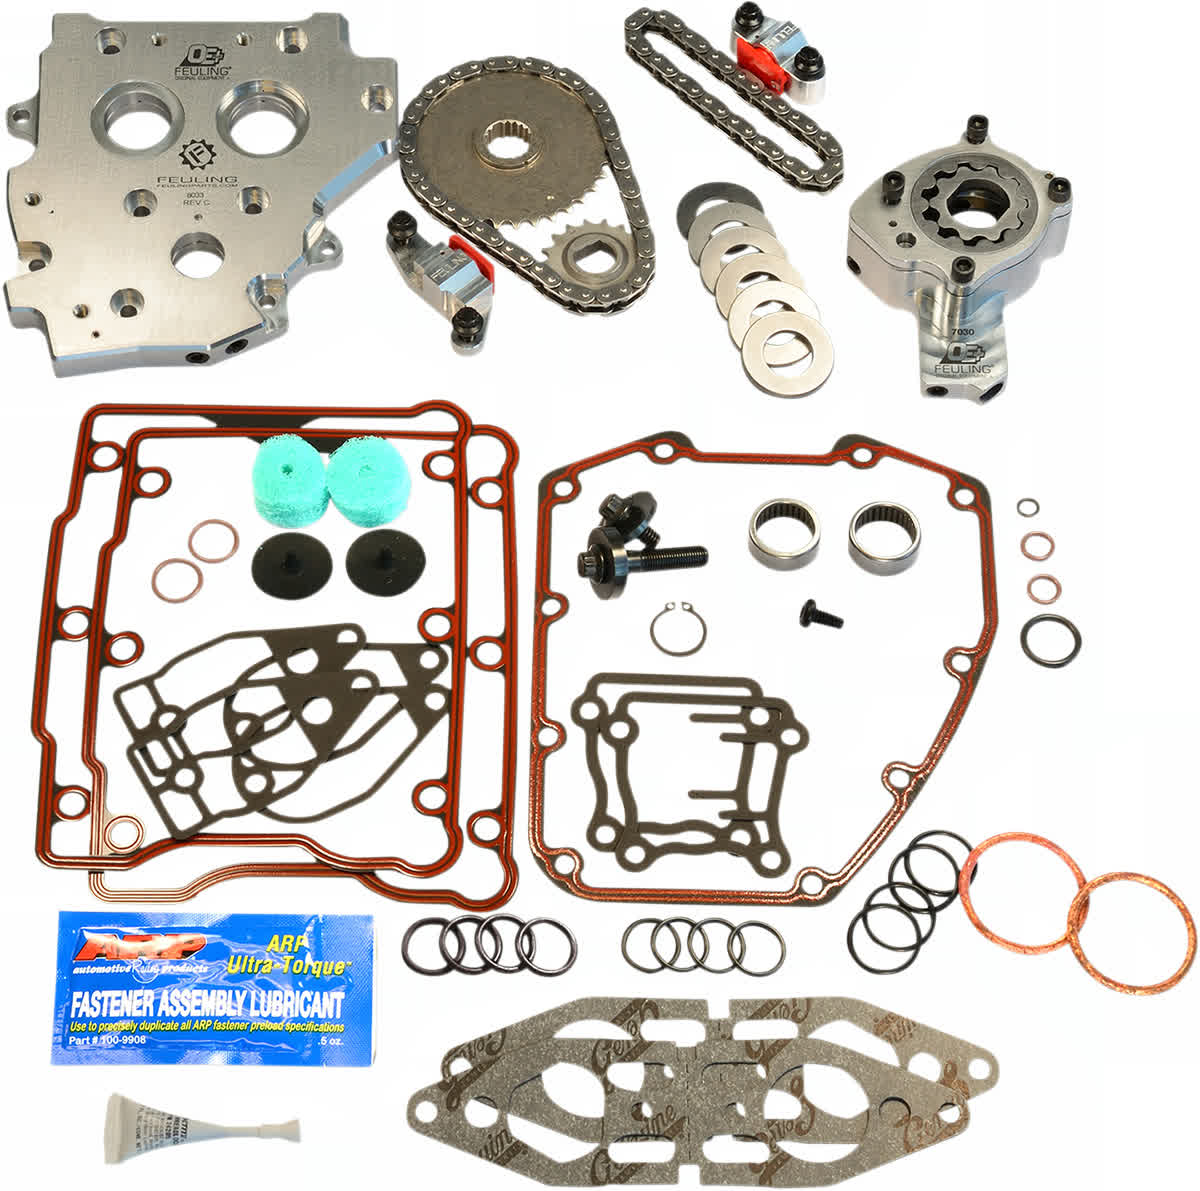 Feuling 7088 OE Hydraulic Cam Chain Tensioner Conversion Kit 02-06